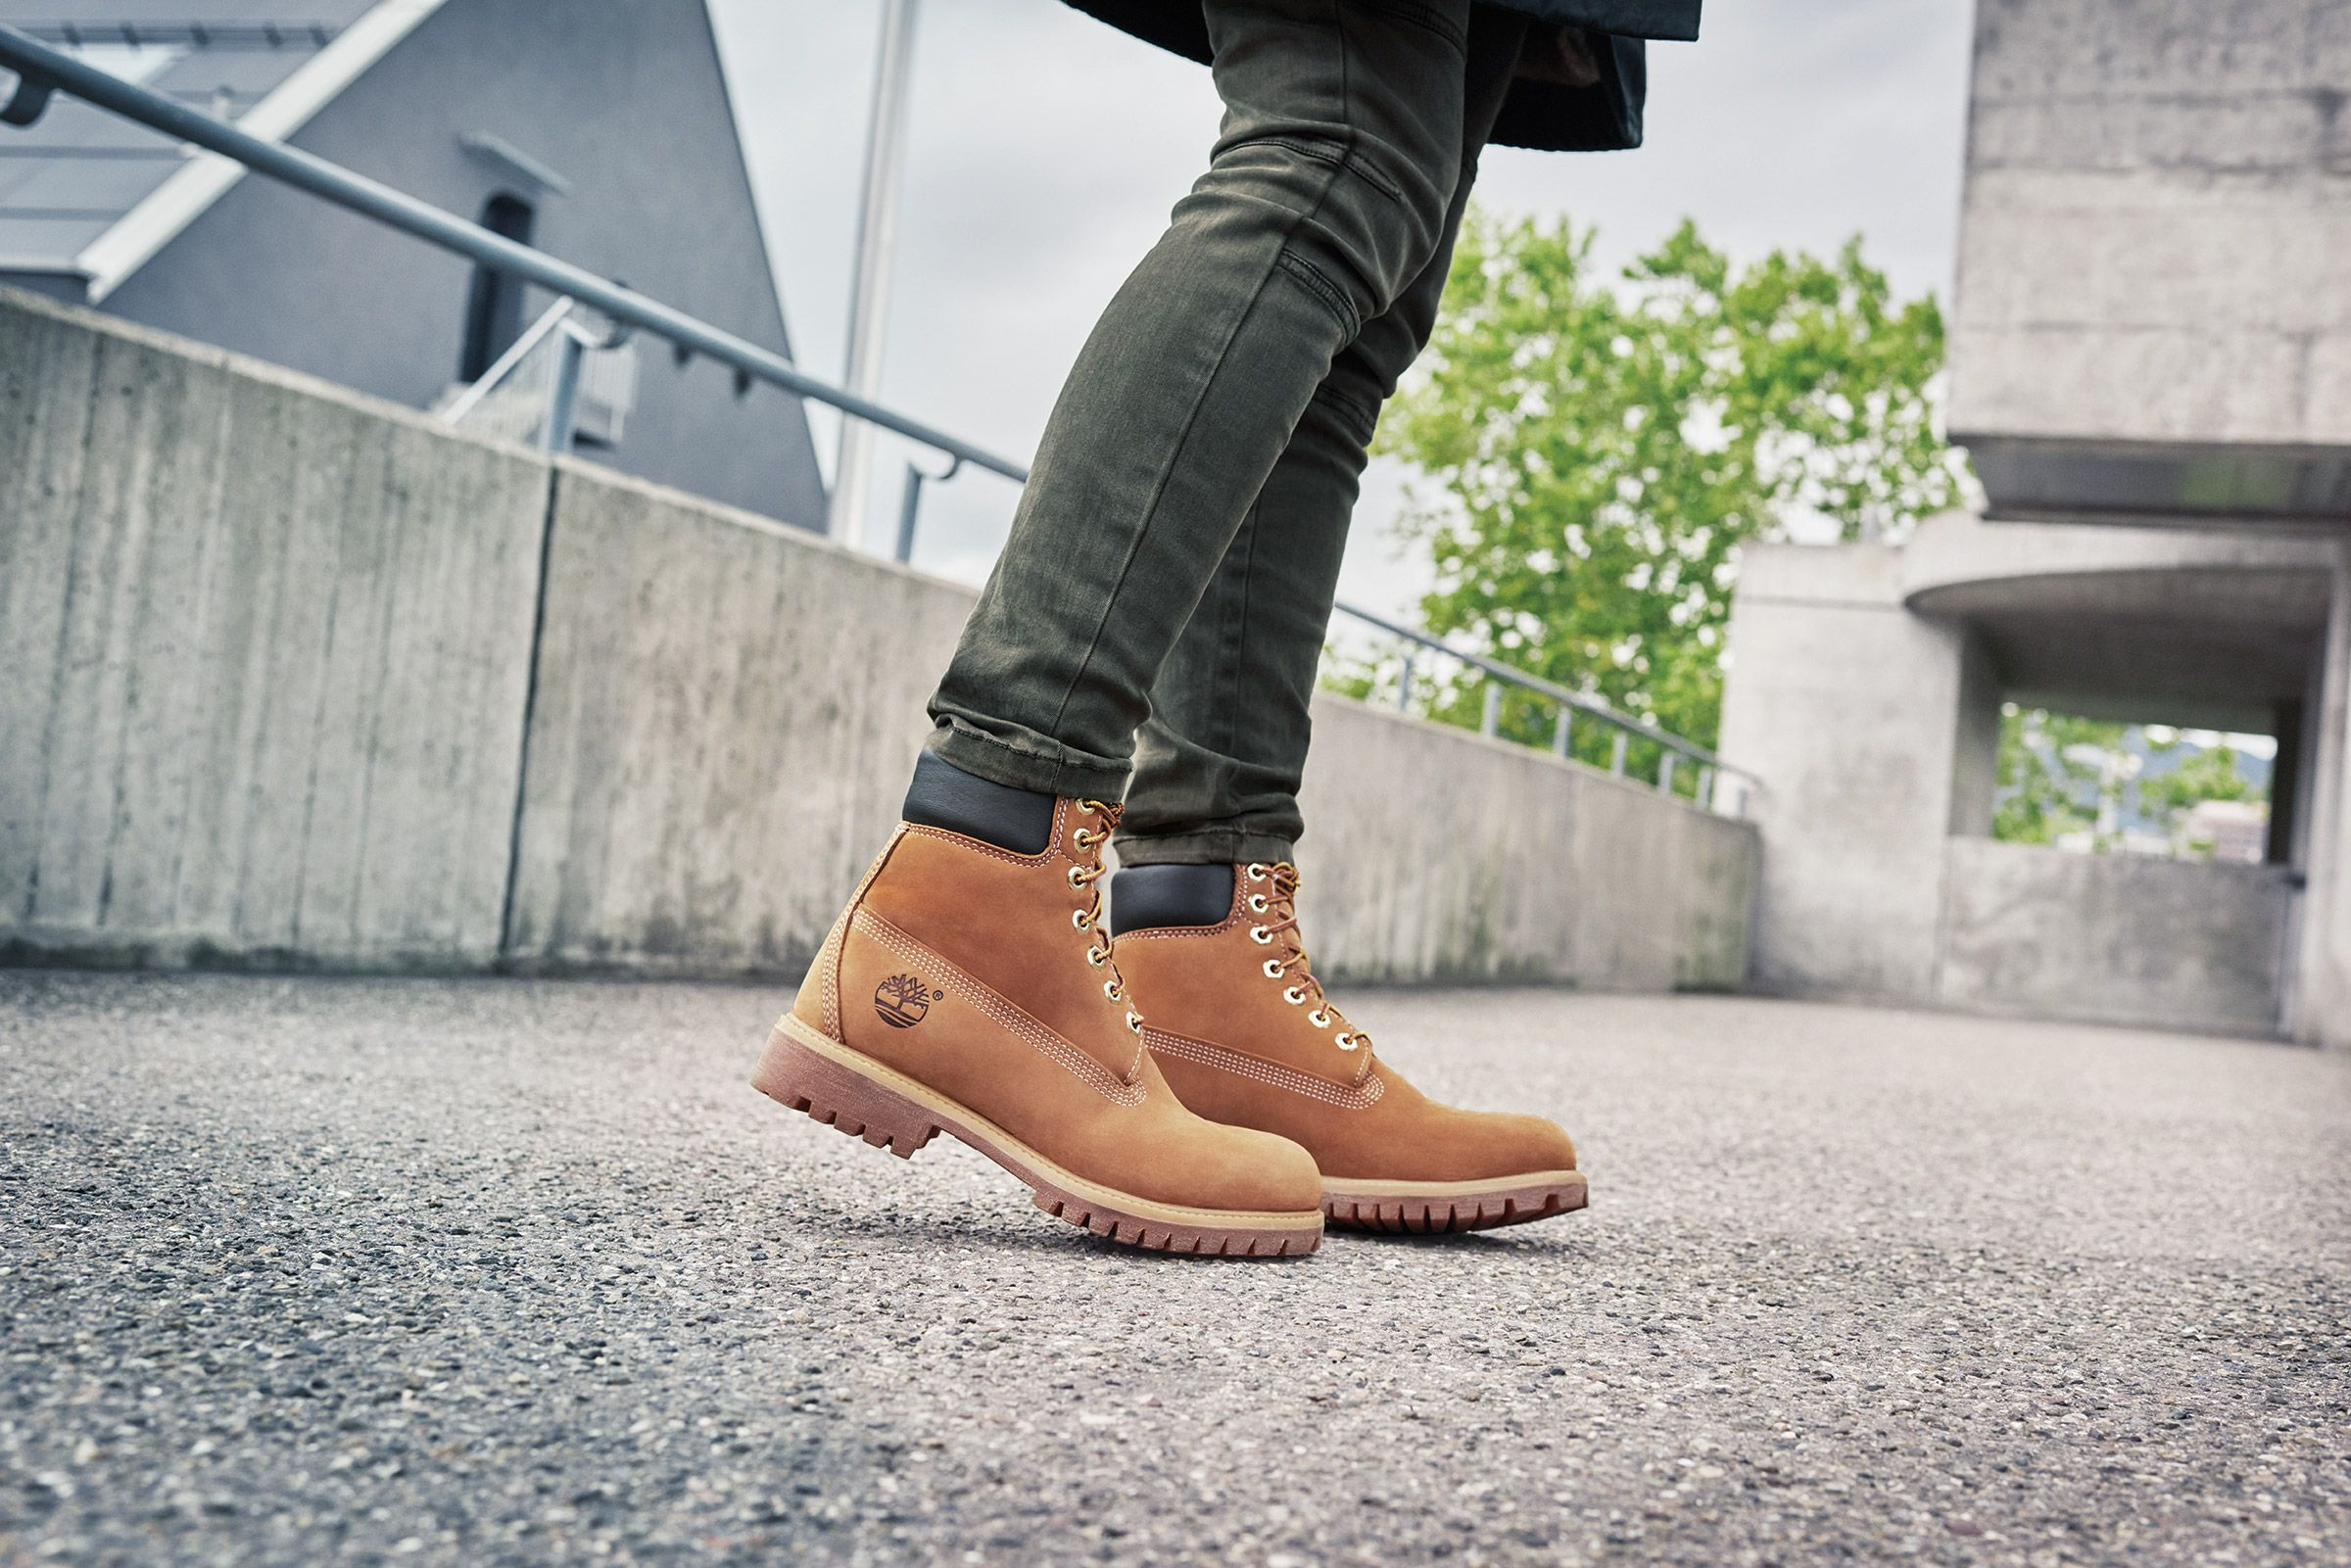 Buy One Get One 50% Off at Timberland Factory Store! Valid